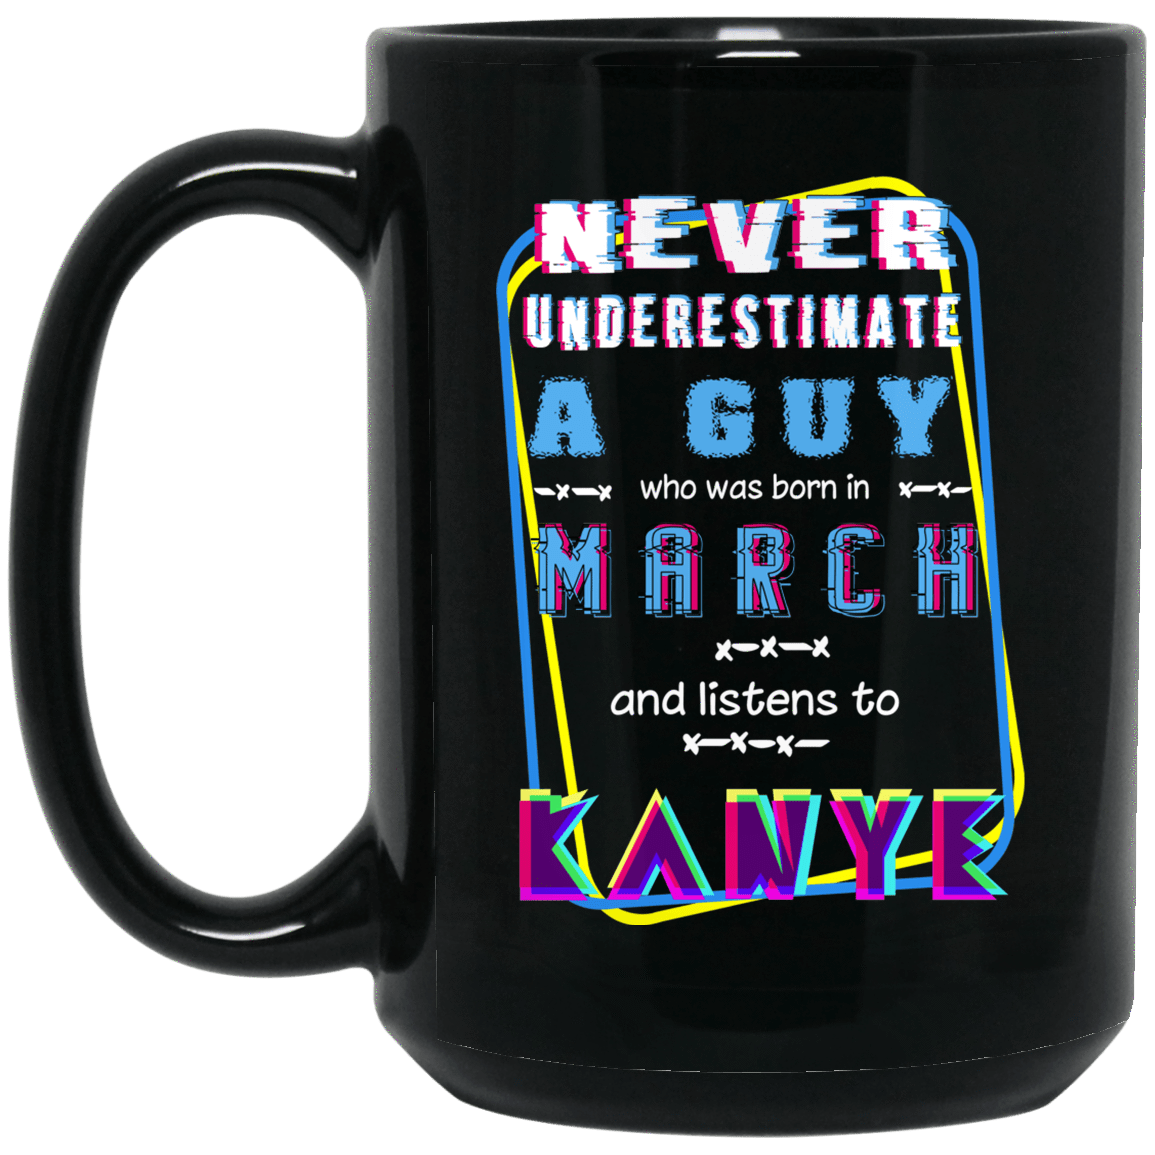 Never Underestimate A Guy Who Was Born In March And Listens To Kanye West Mug 1066-10182-76152210-49311 - Tee Ript